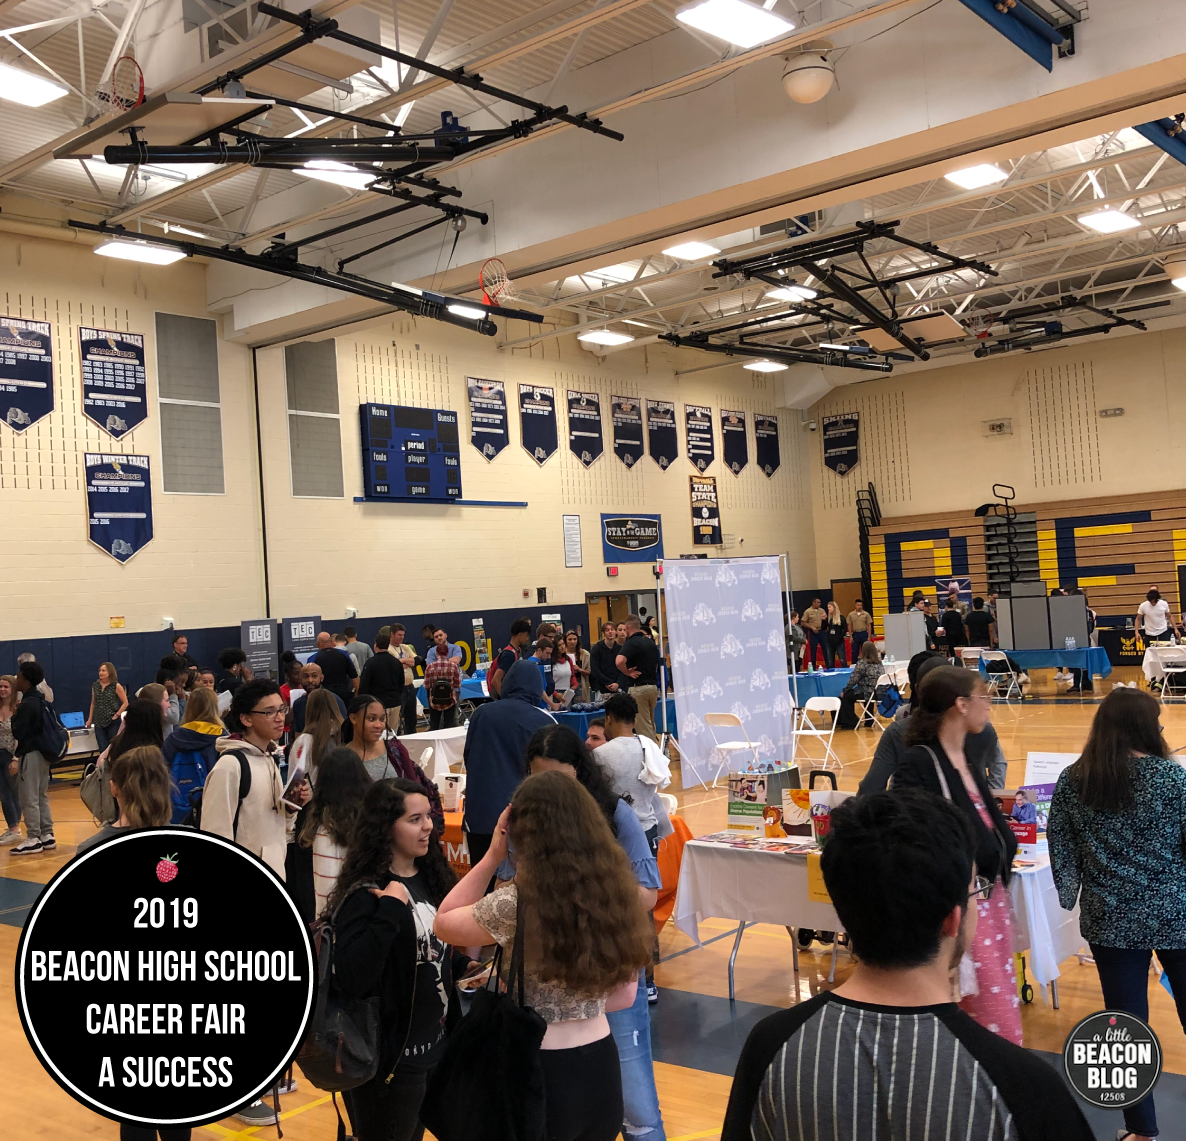 beacon-high-school-career-fair-success-MAIN.png